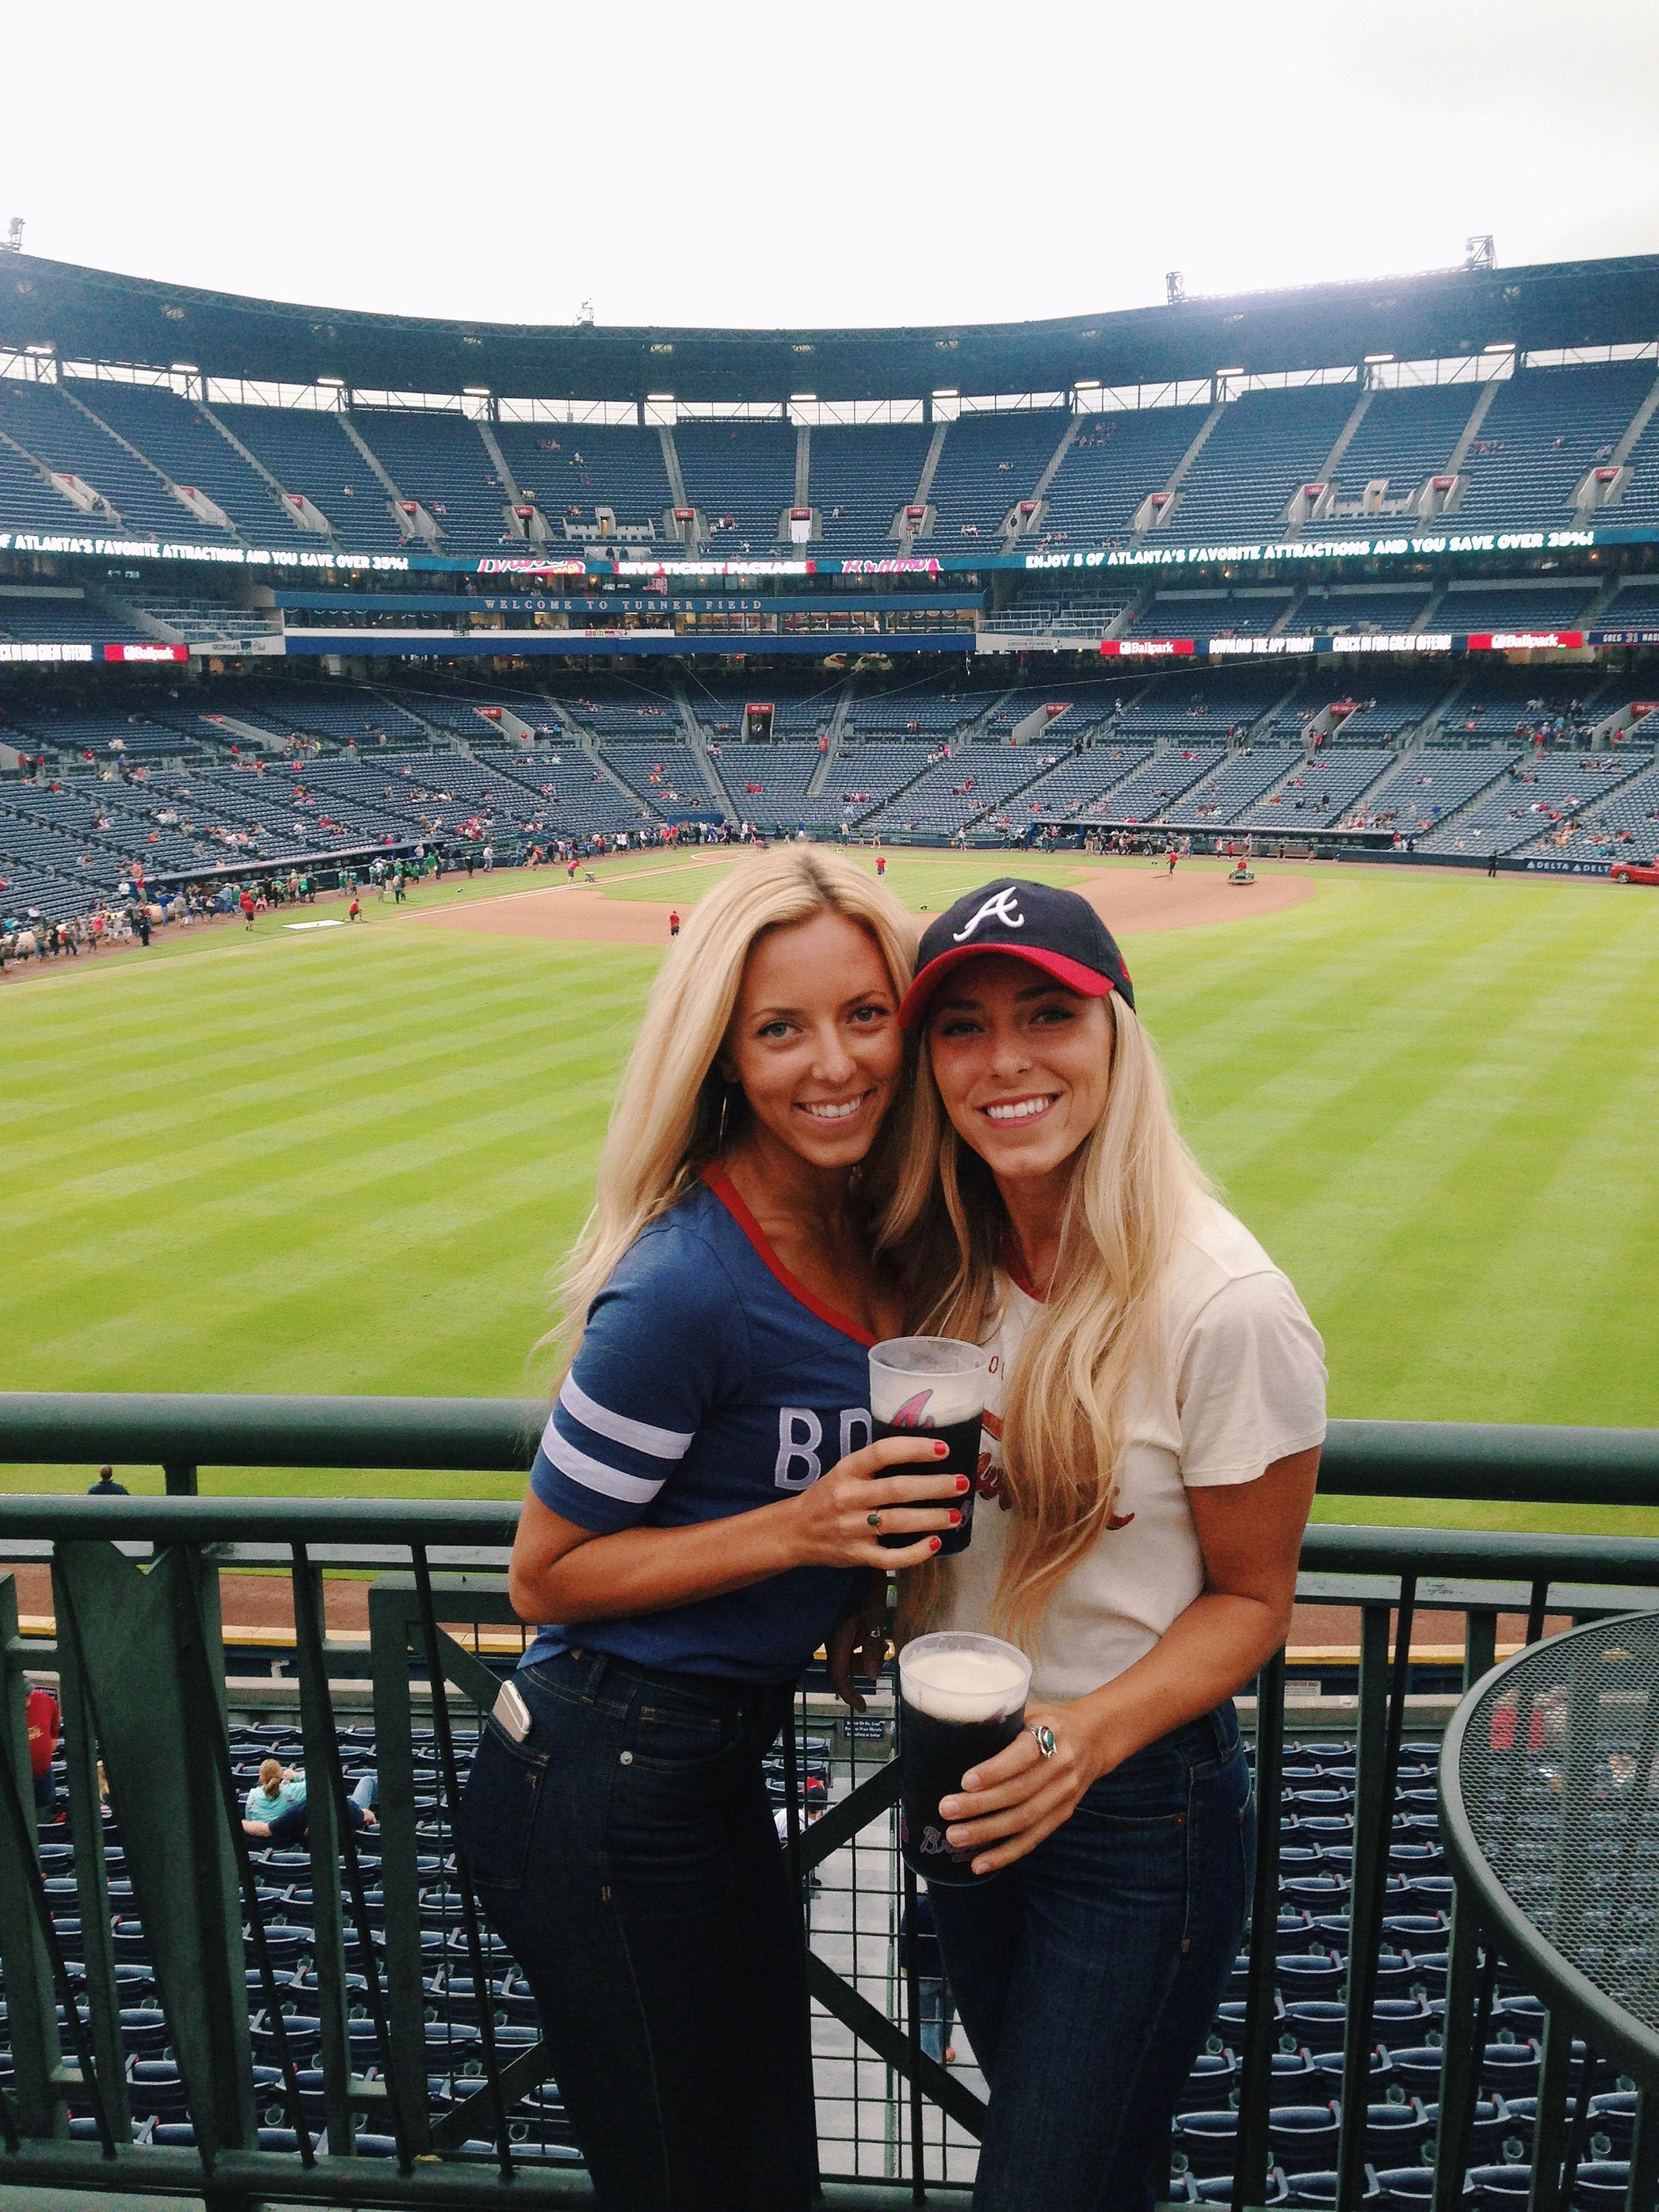 Atlanta Braves Baseball Baseball Game Outfit K C